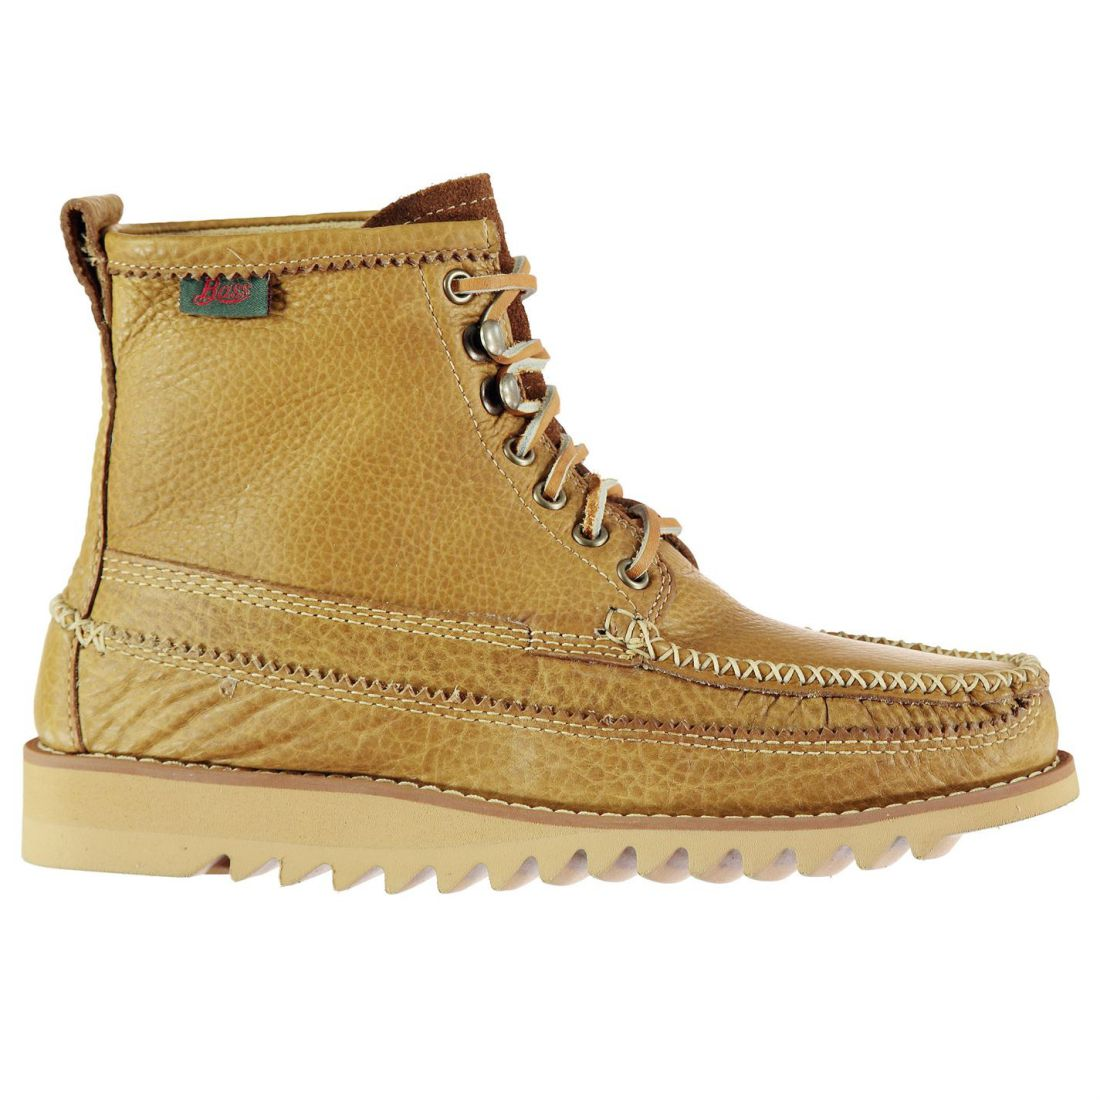 c925eafd985 Mens bass weejuns lyndon hi bison boots rugged lace up new ebay jpg  1100x1100 Lace up